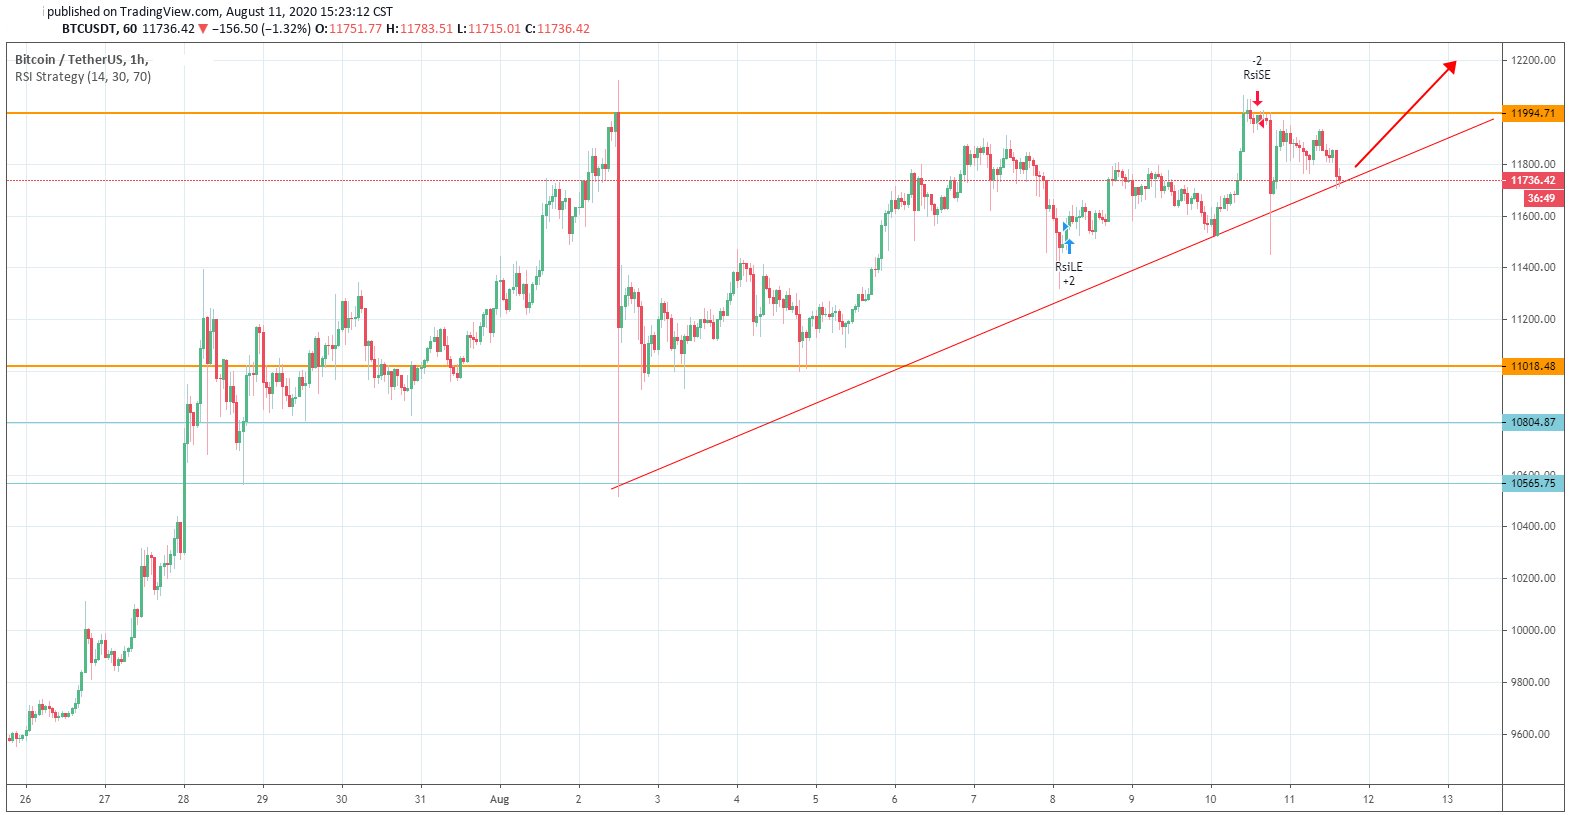 Bitcoin Suddenly Dropped by $500 Revealed Strong Support Down There Instead